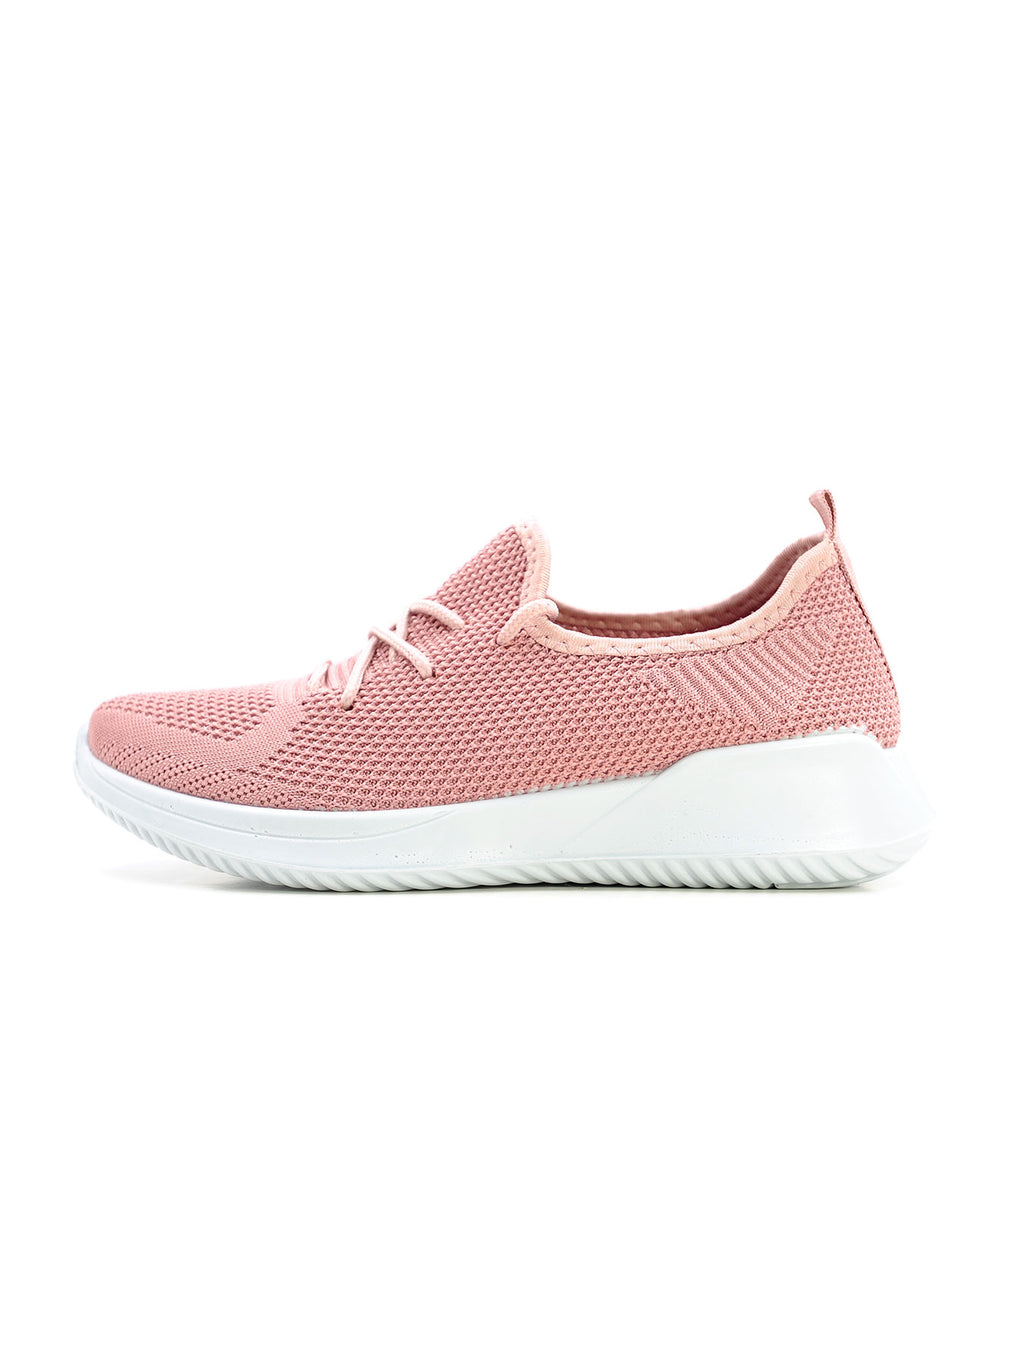 Larrie Pink Lace Up Fit Lightweight Cushioned Sneakers